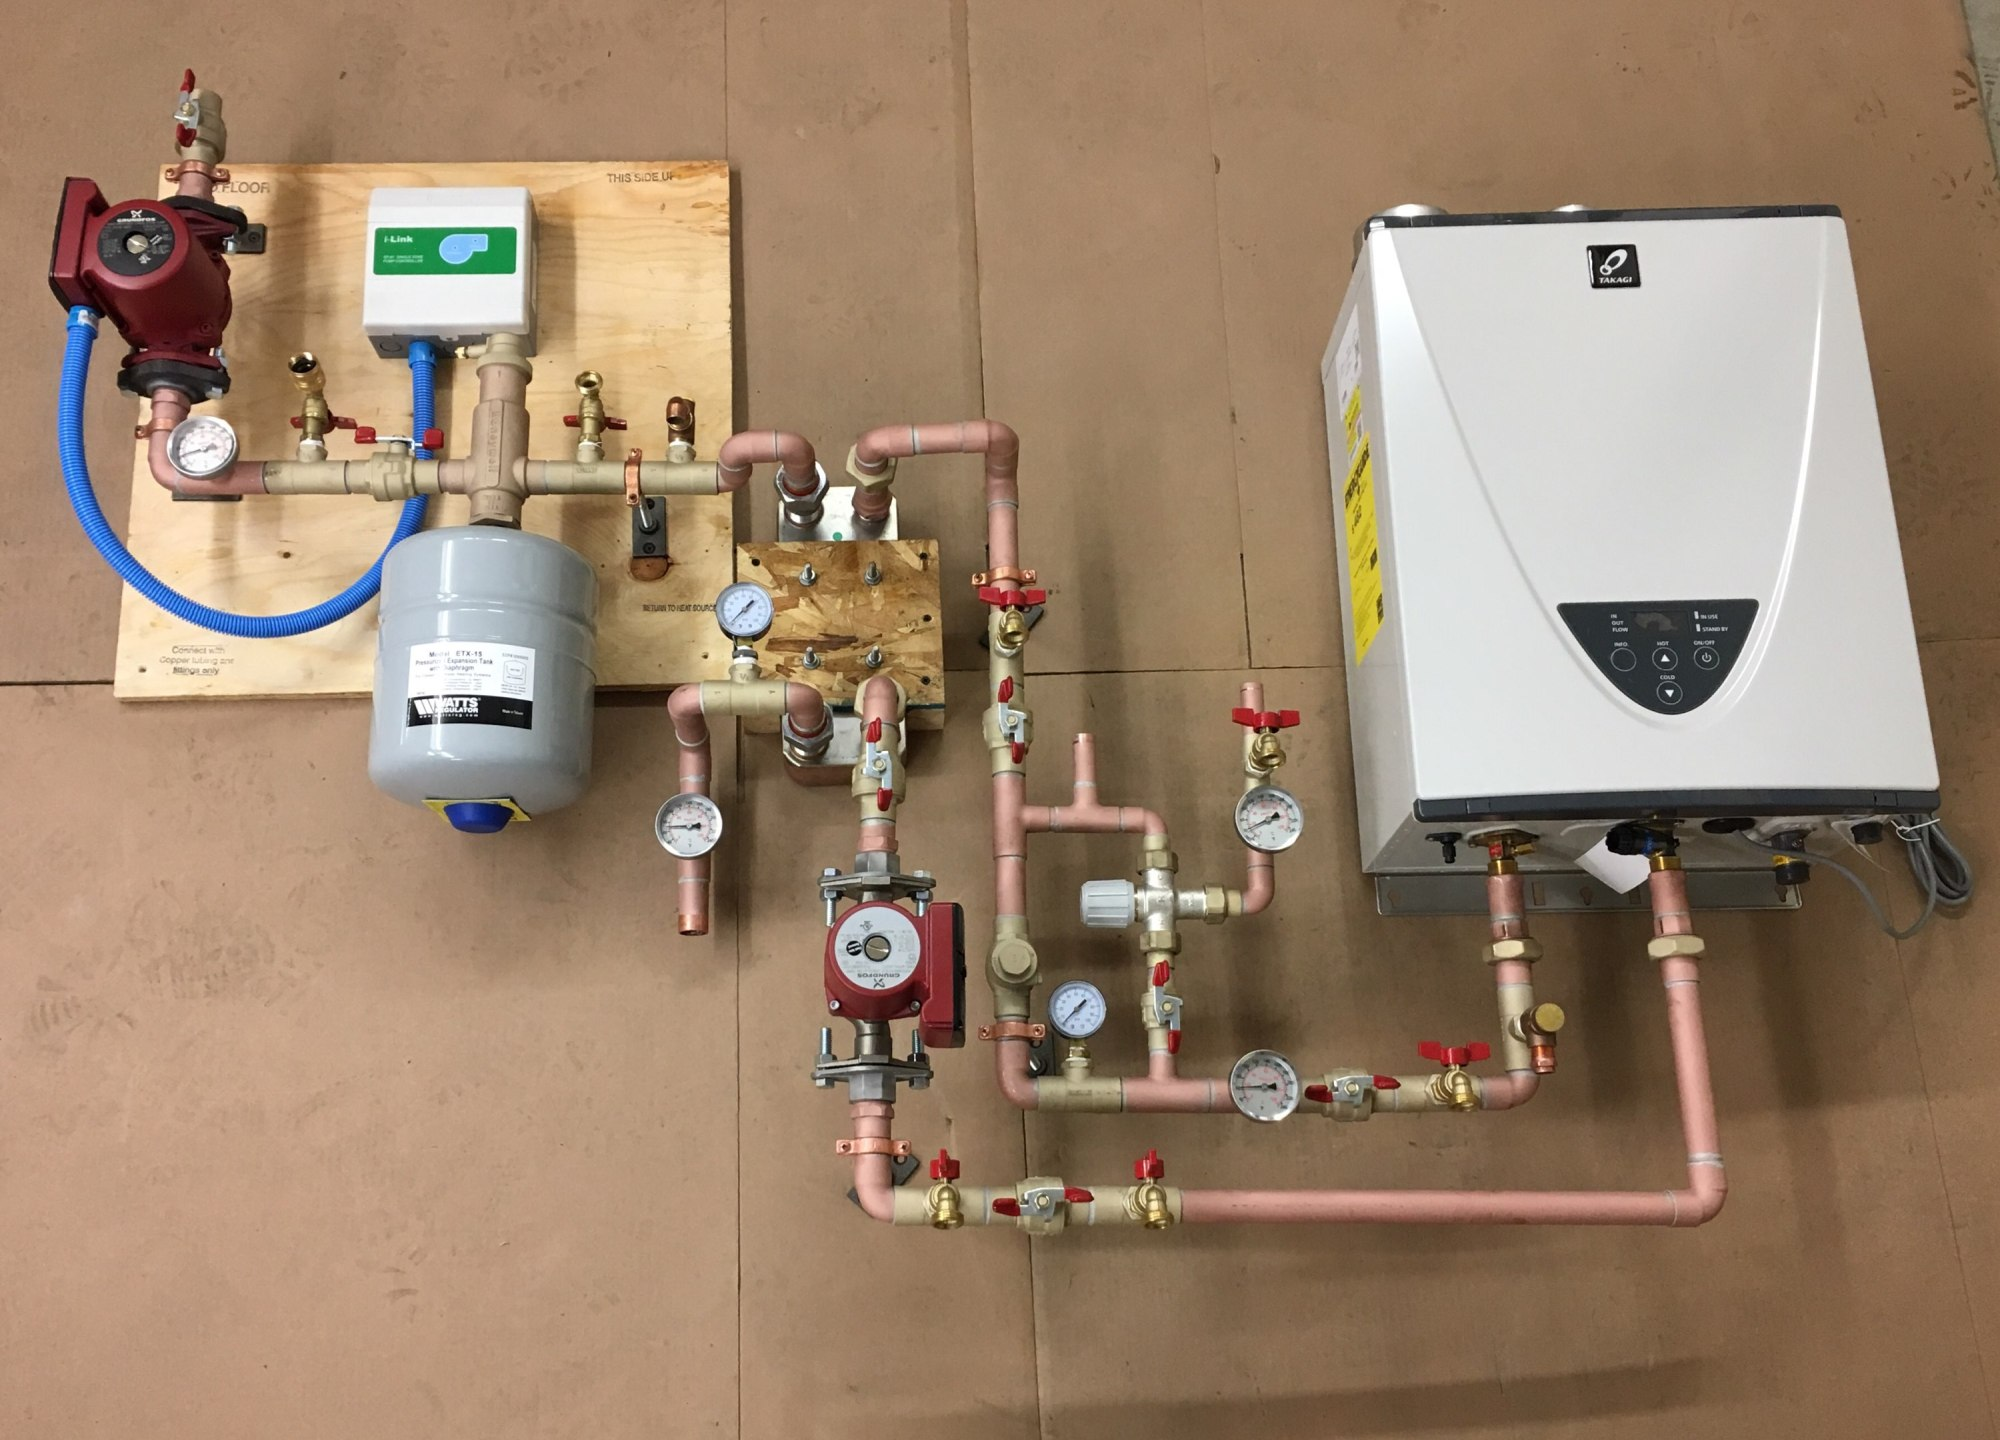 hight resolution of single zone heat exchange system with an on demand water heater